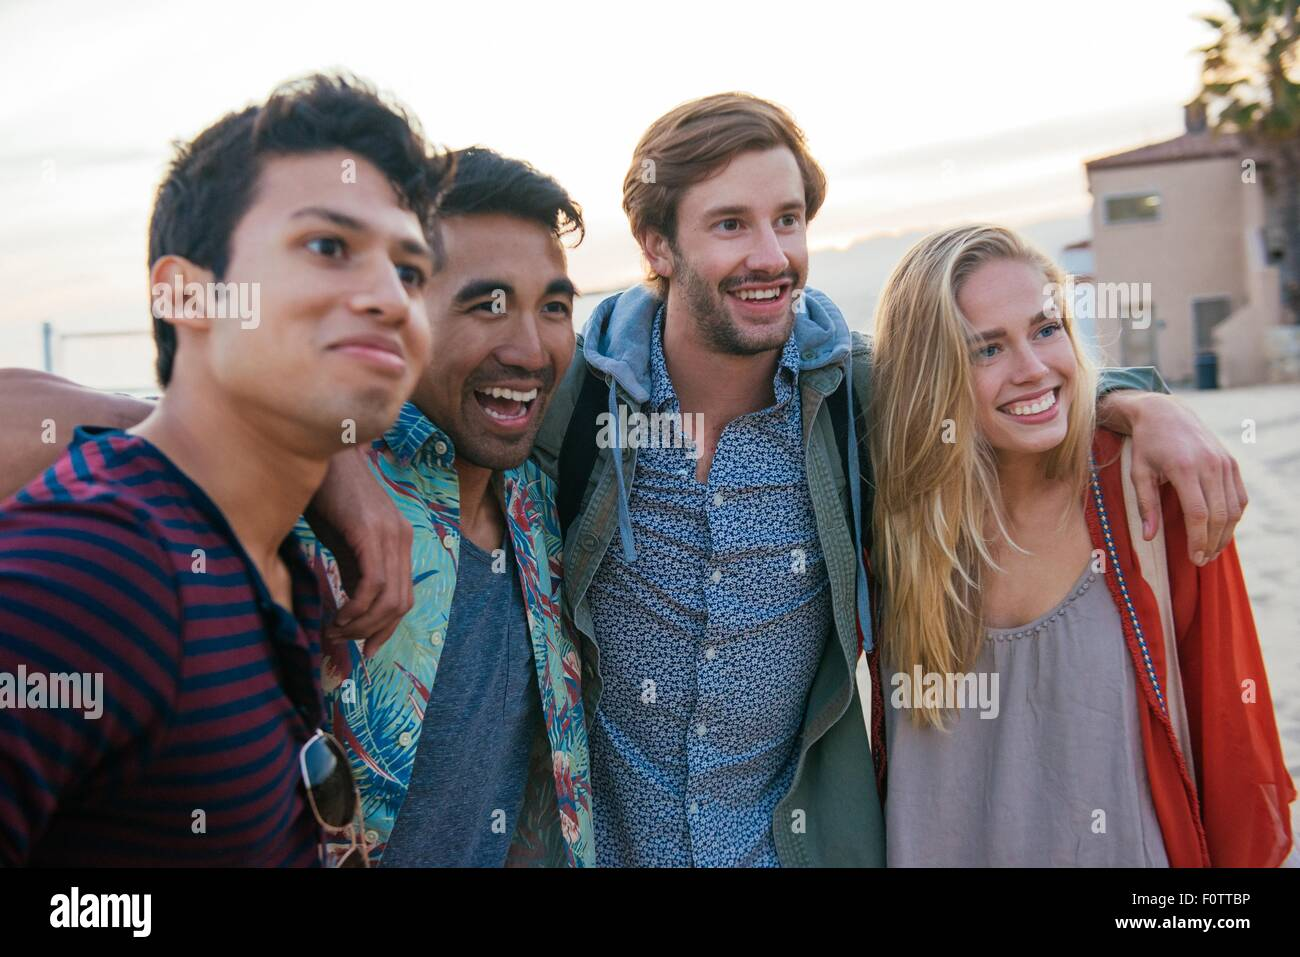 Groupe d'amis Standing together on beach, rire Photo Stock